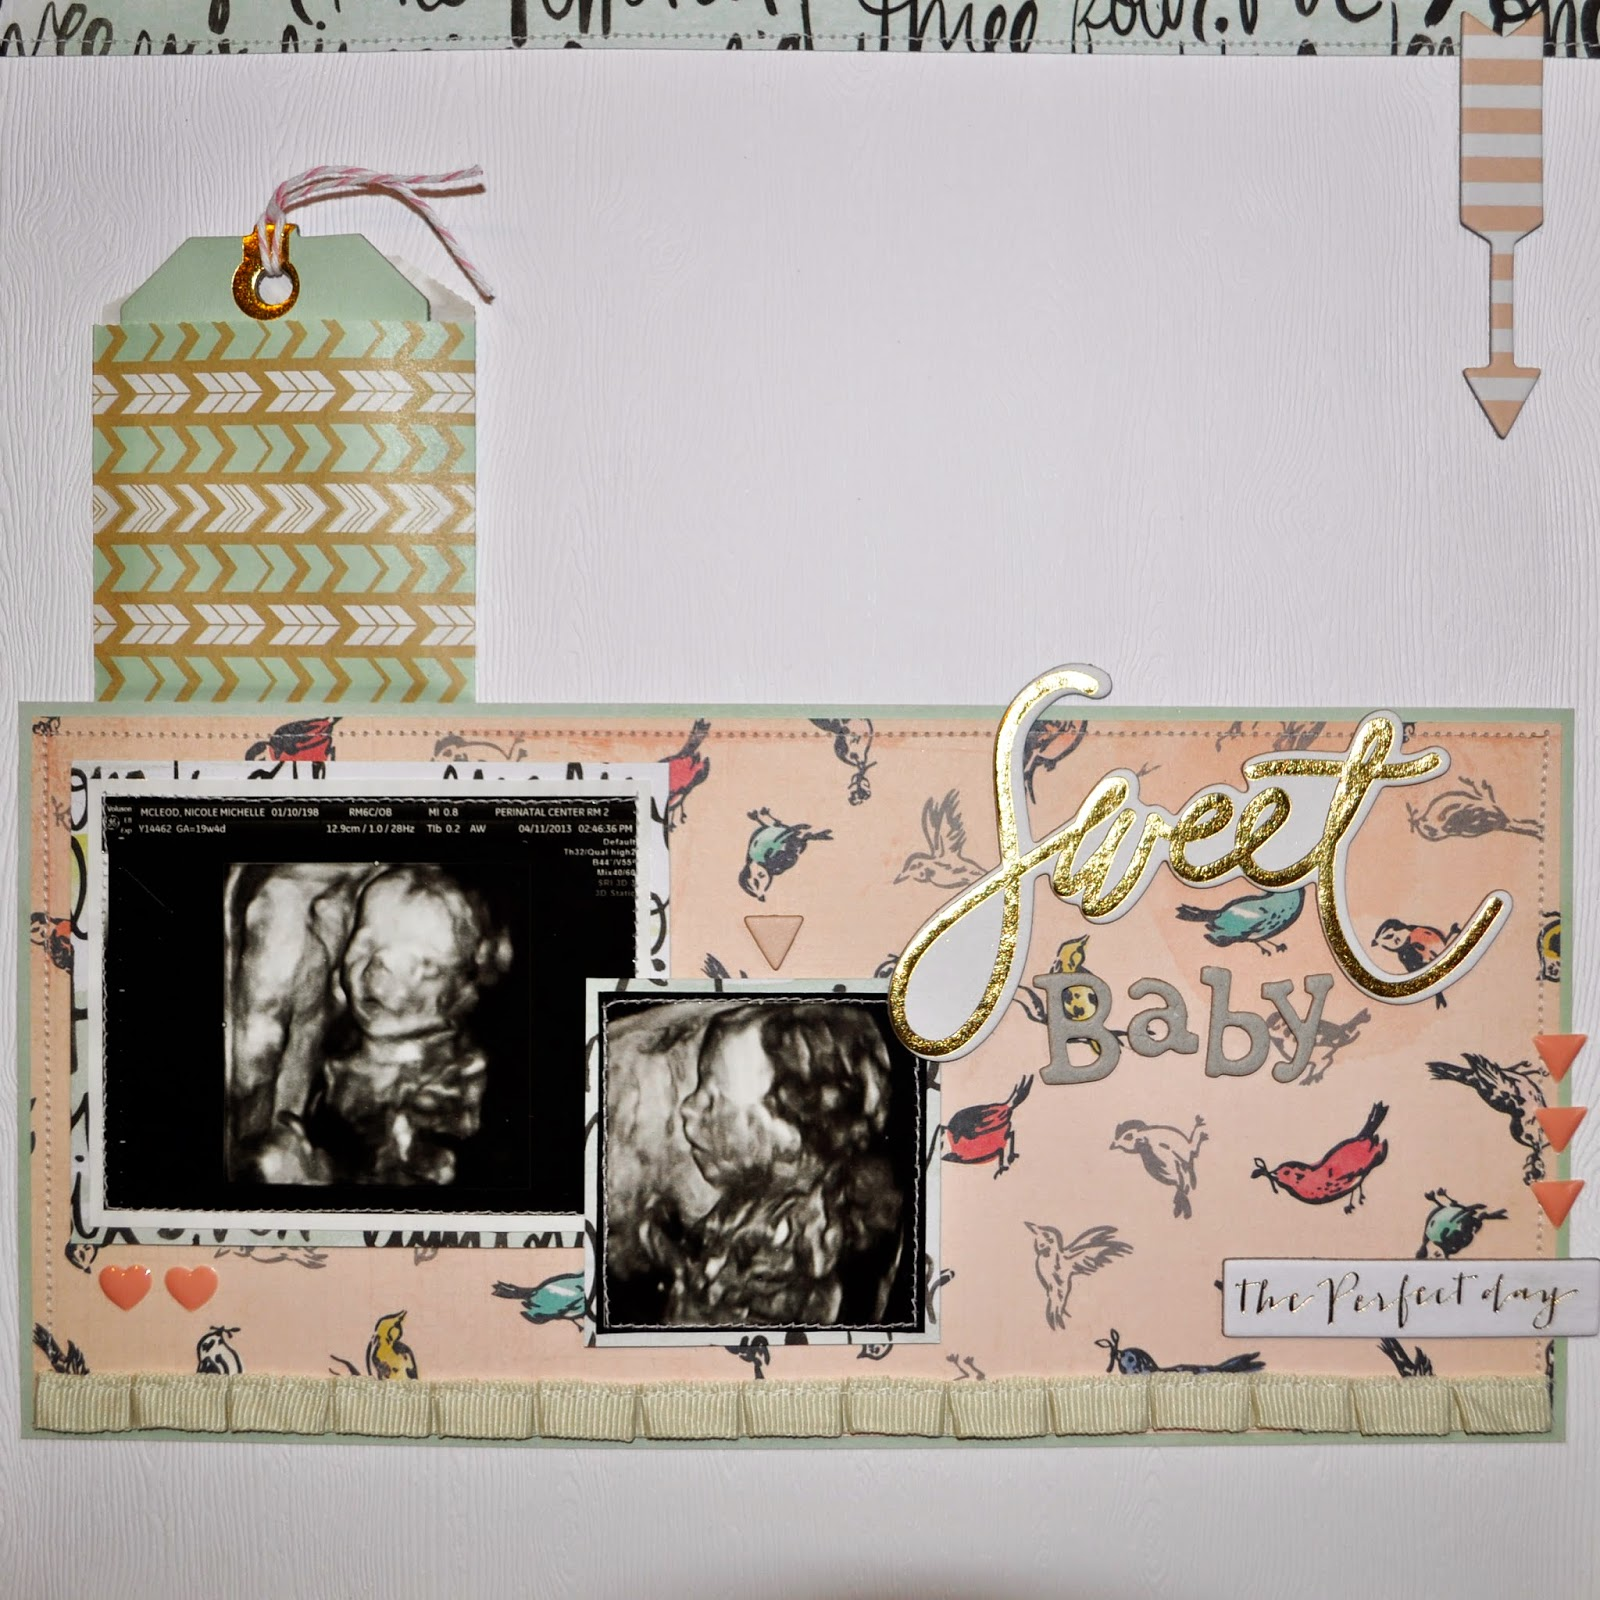 12x12 scrapbook page pregnancy maternity photos ultrasound 3D 2D pink teal blue birds sweet baby girl boy machine stitching sew sewing ribbon ivory white woodgrain